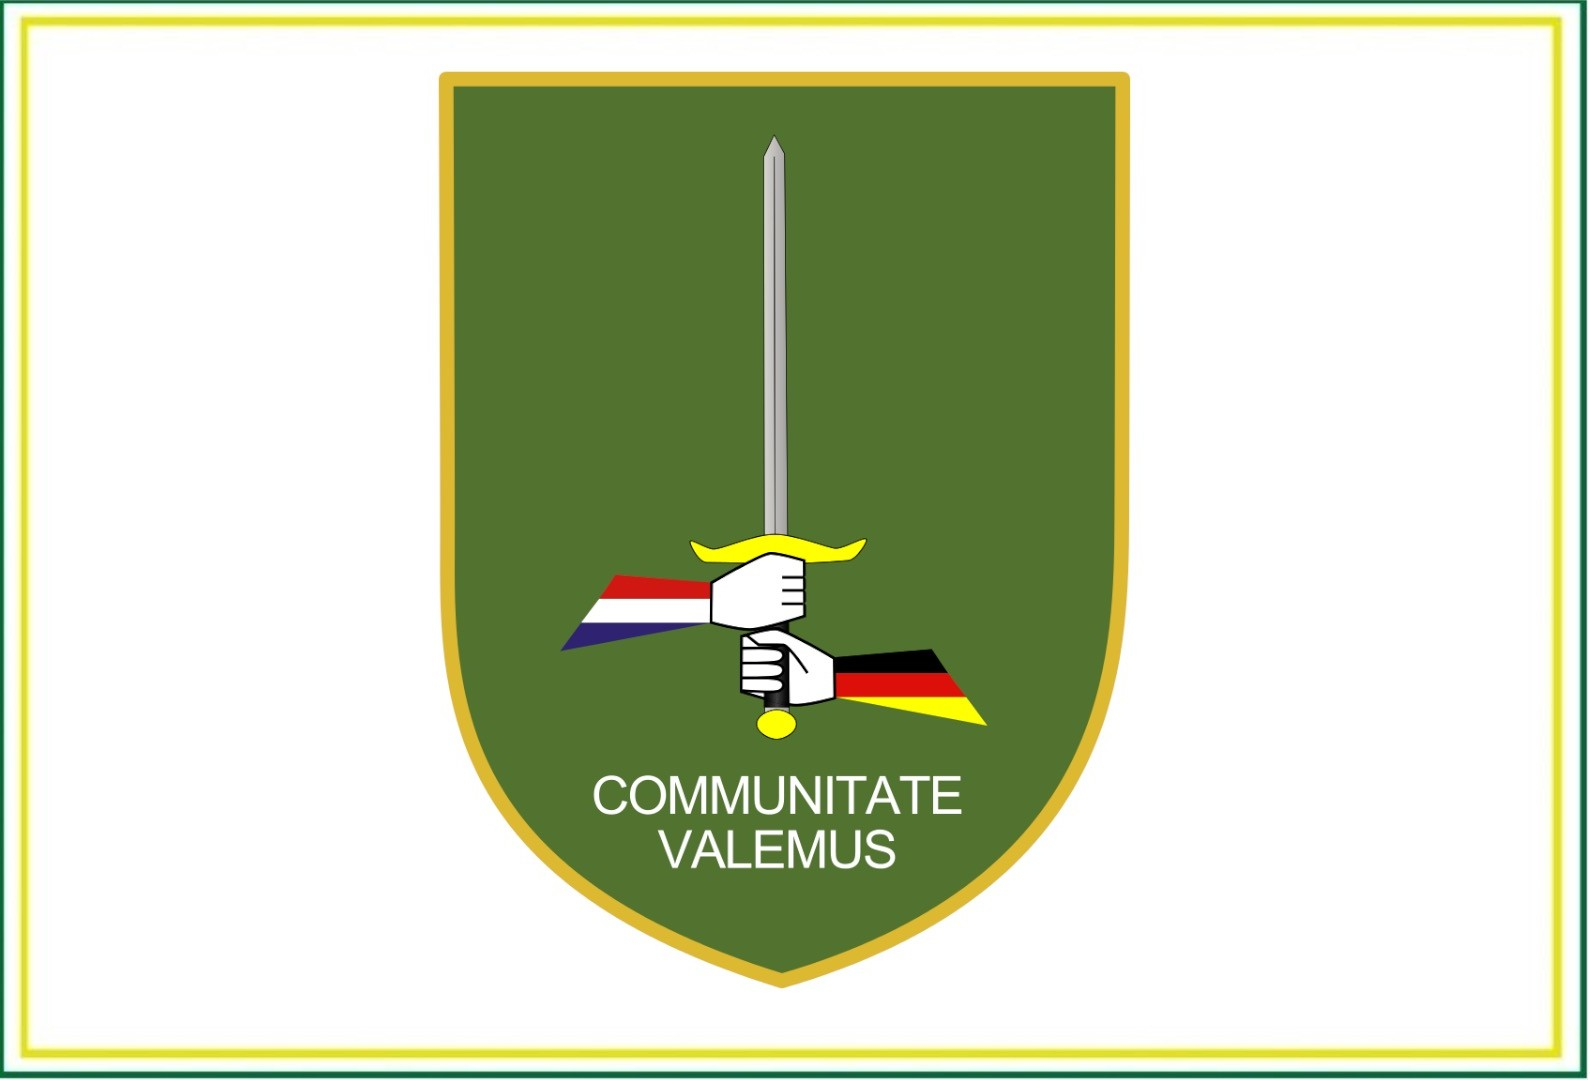 NRDC-ITA shares NRF experience with the 1st German Nederland Corps